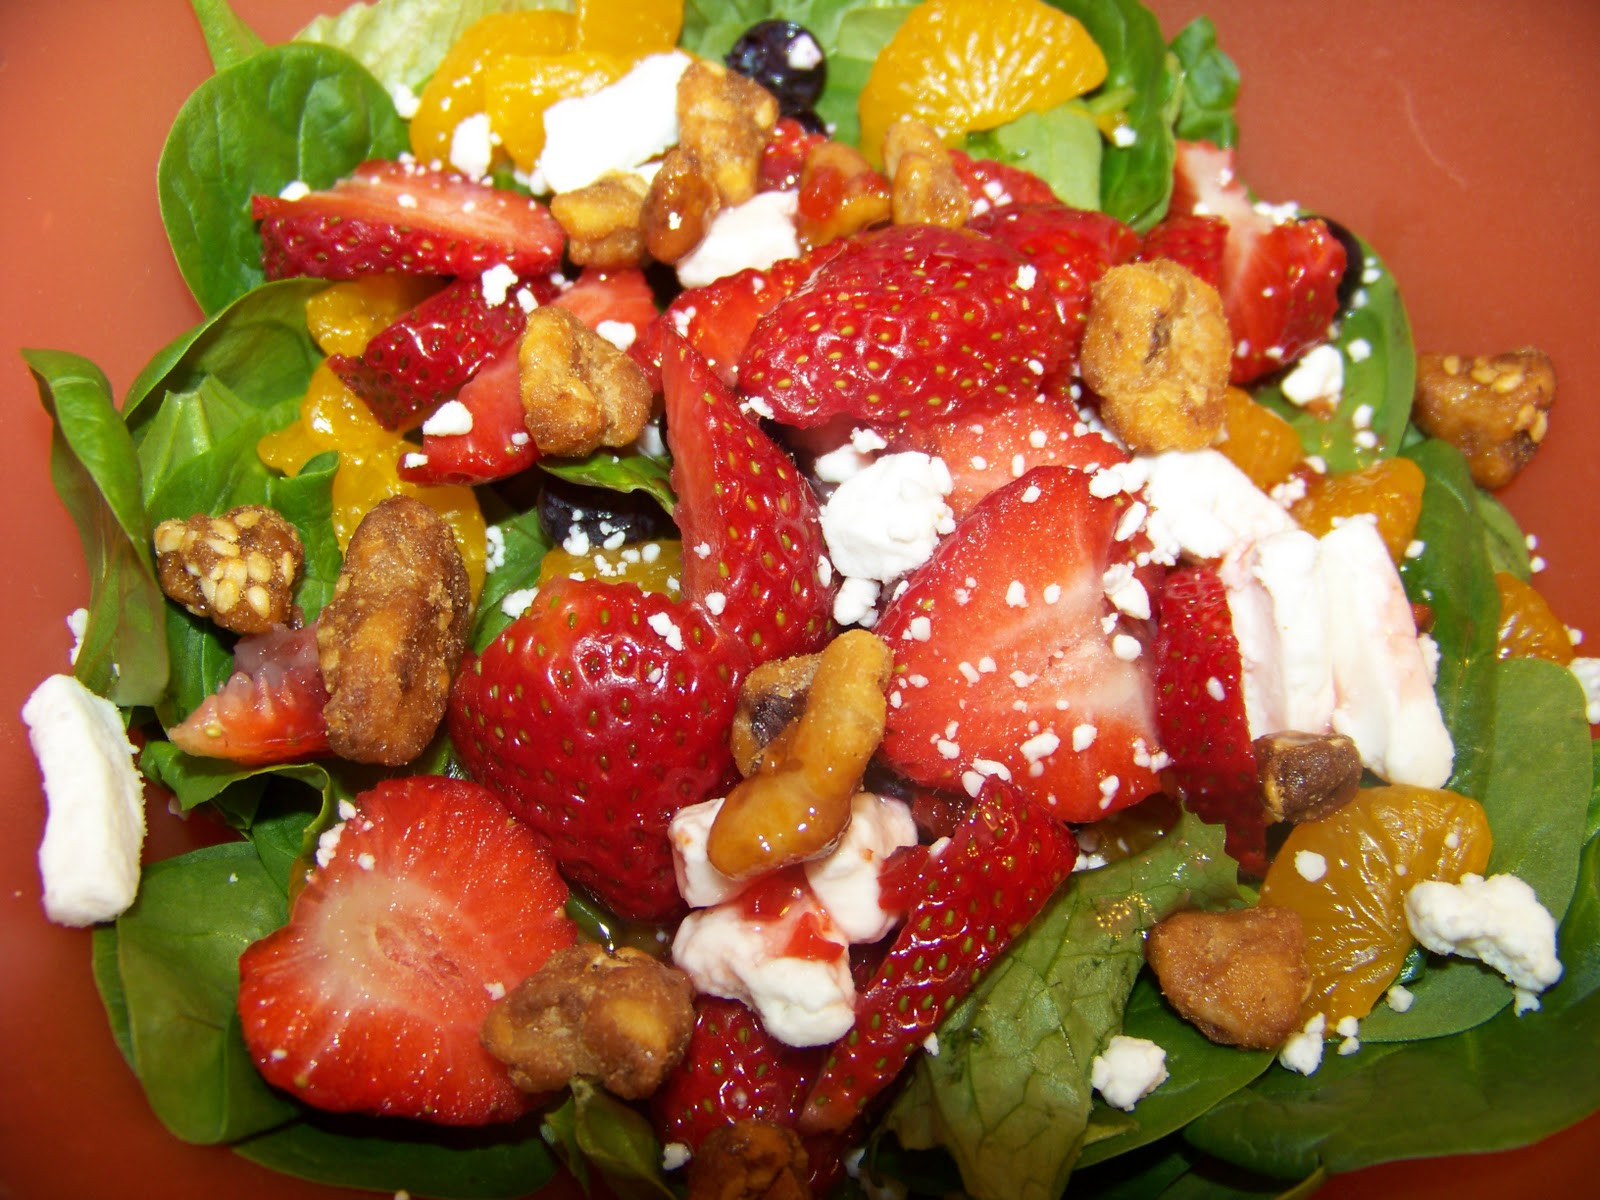 Healthy Lunches To Eat  I Eat Good Real Food Healthy Tasty Lunches